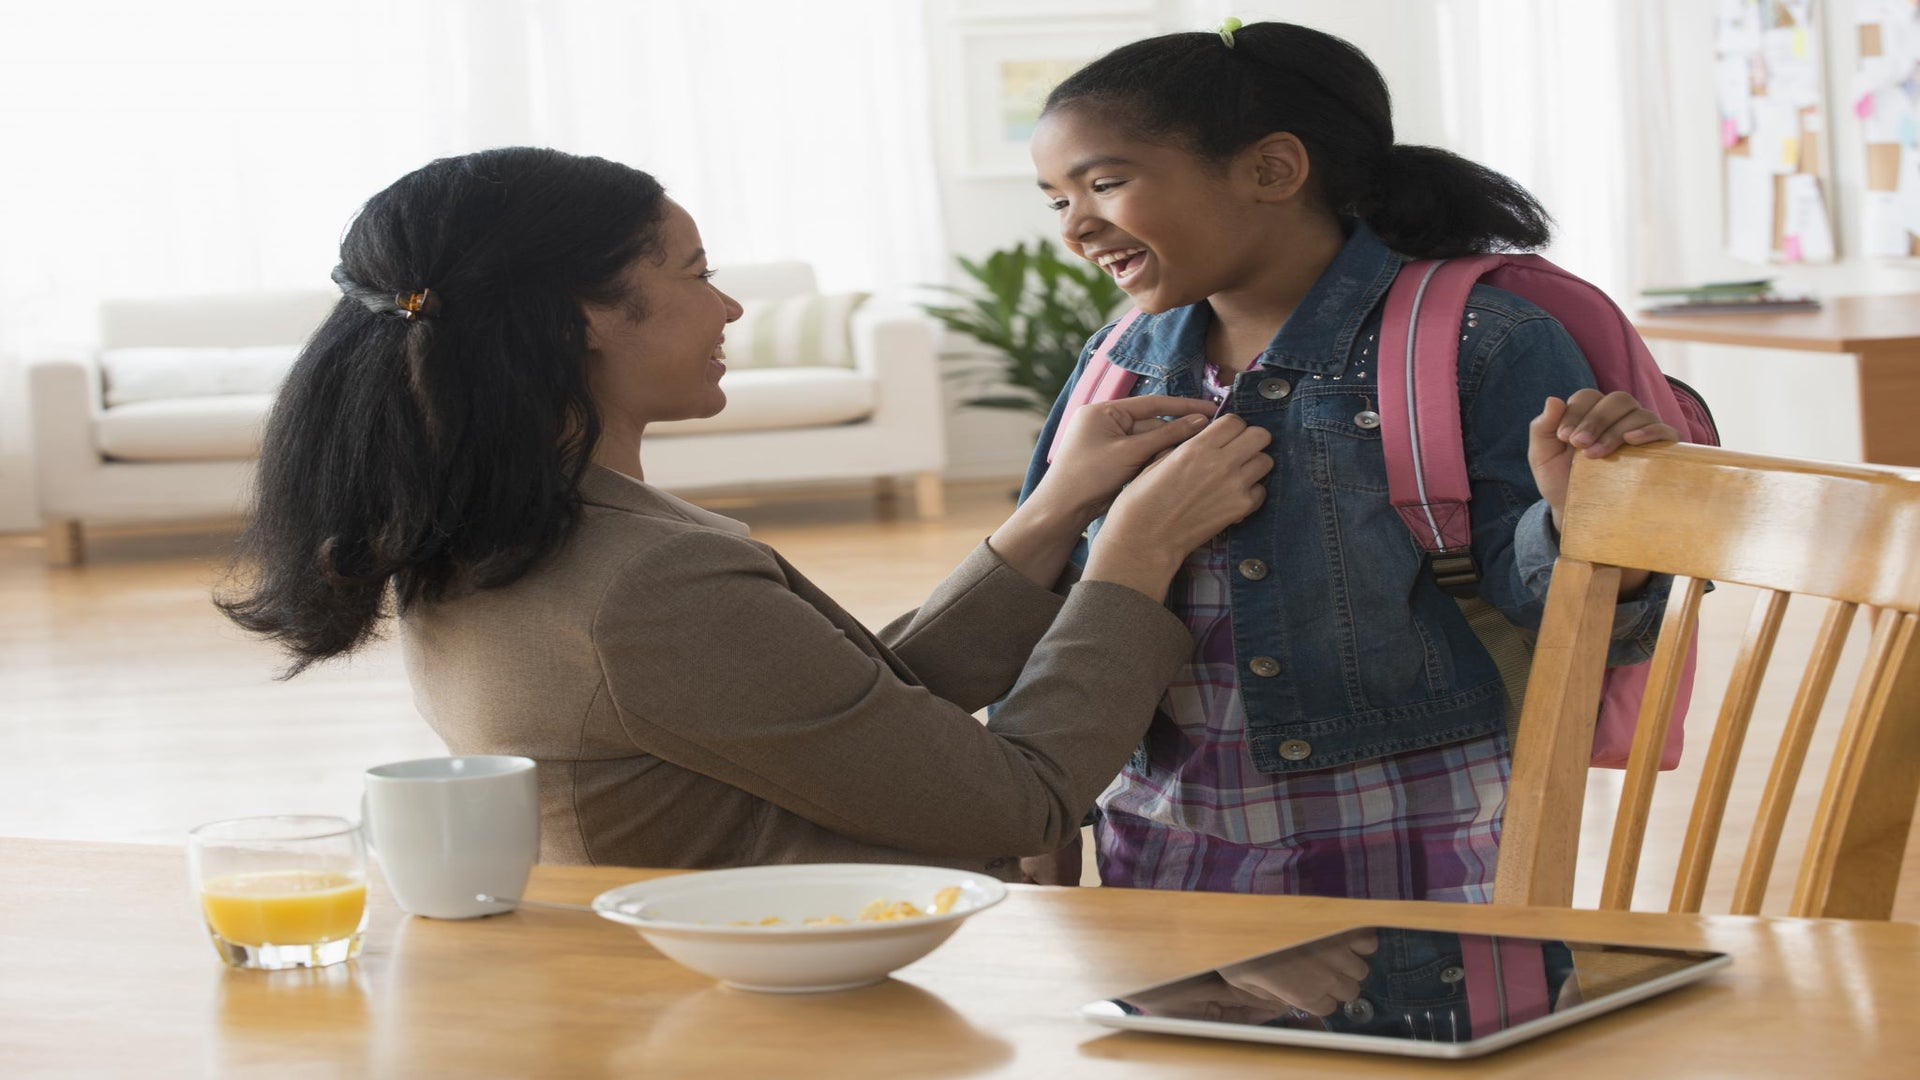 ESSENCE Poll: Would You Consider Being a Stay-At-Home Mom?